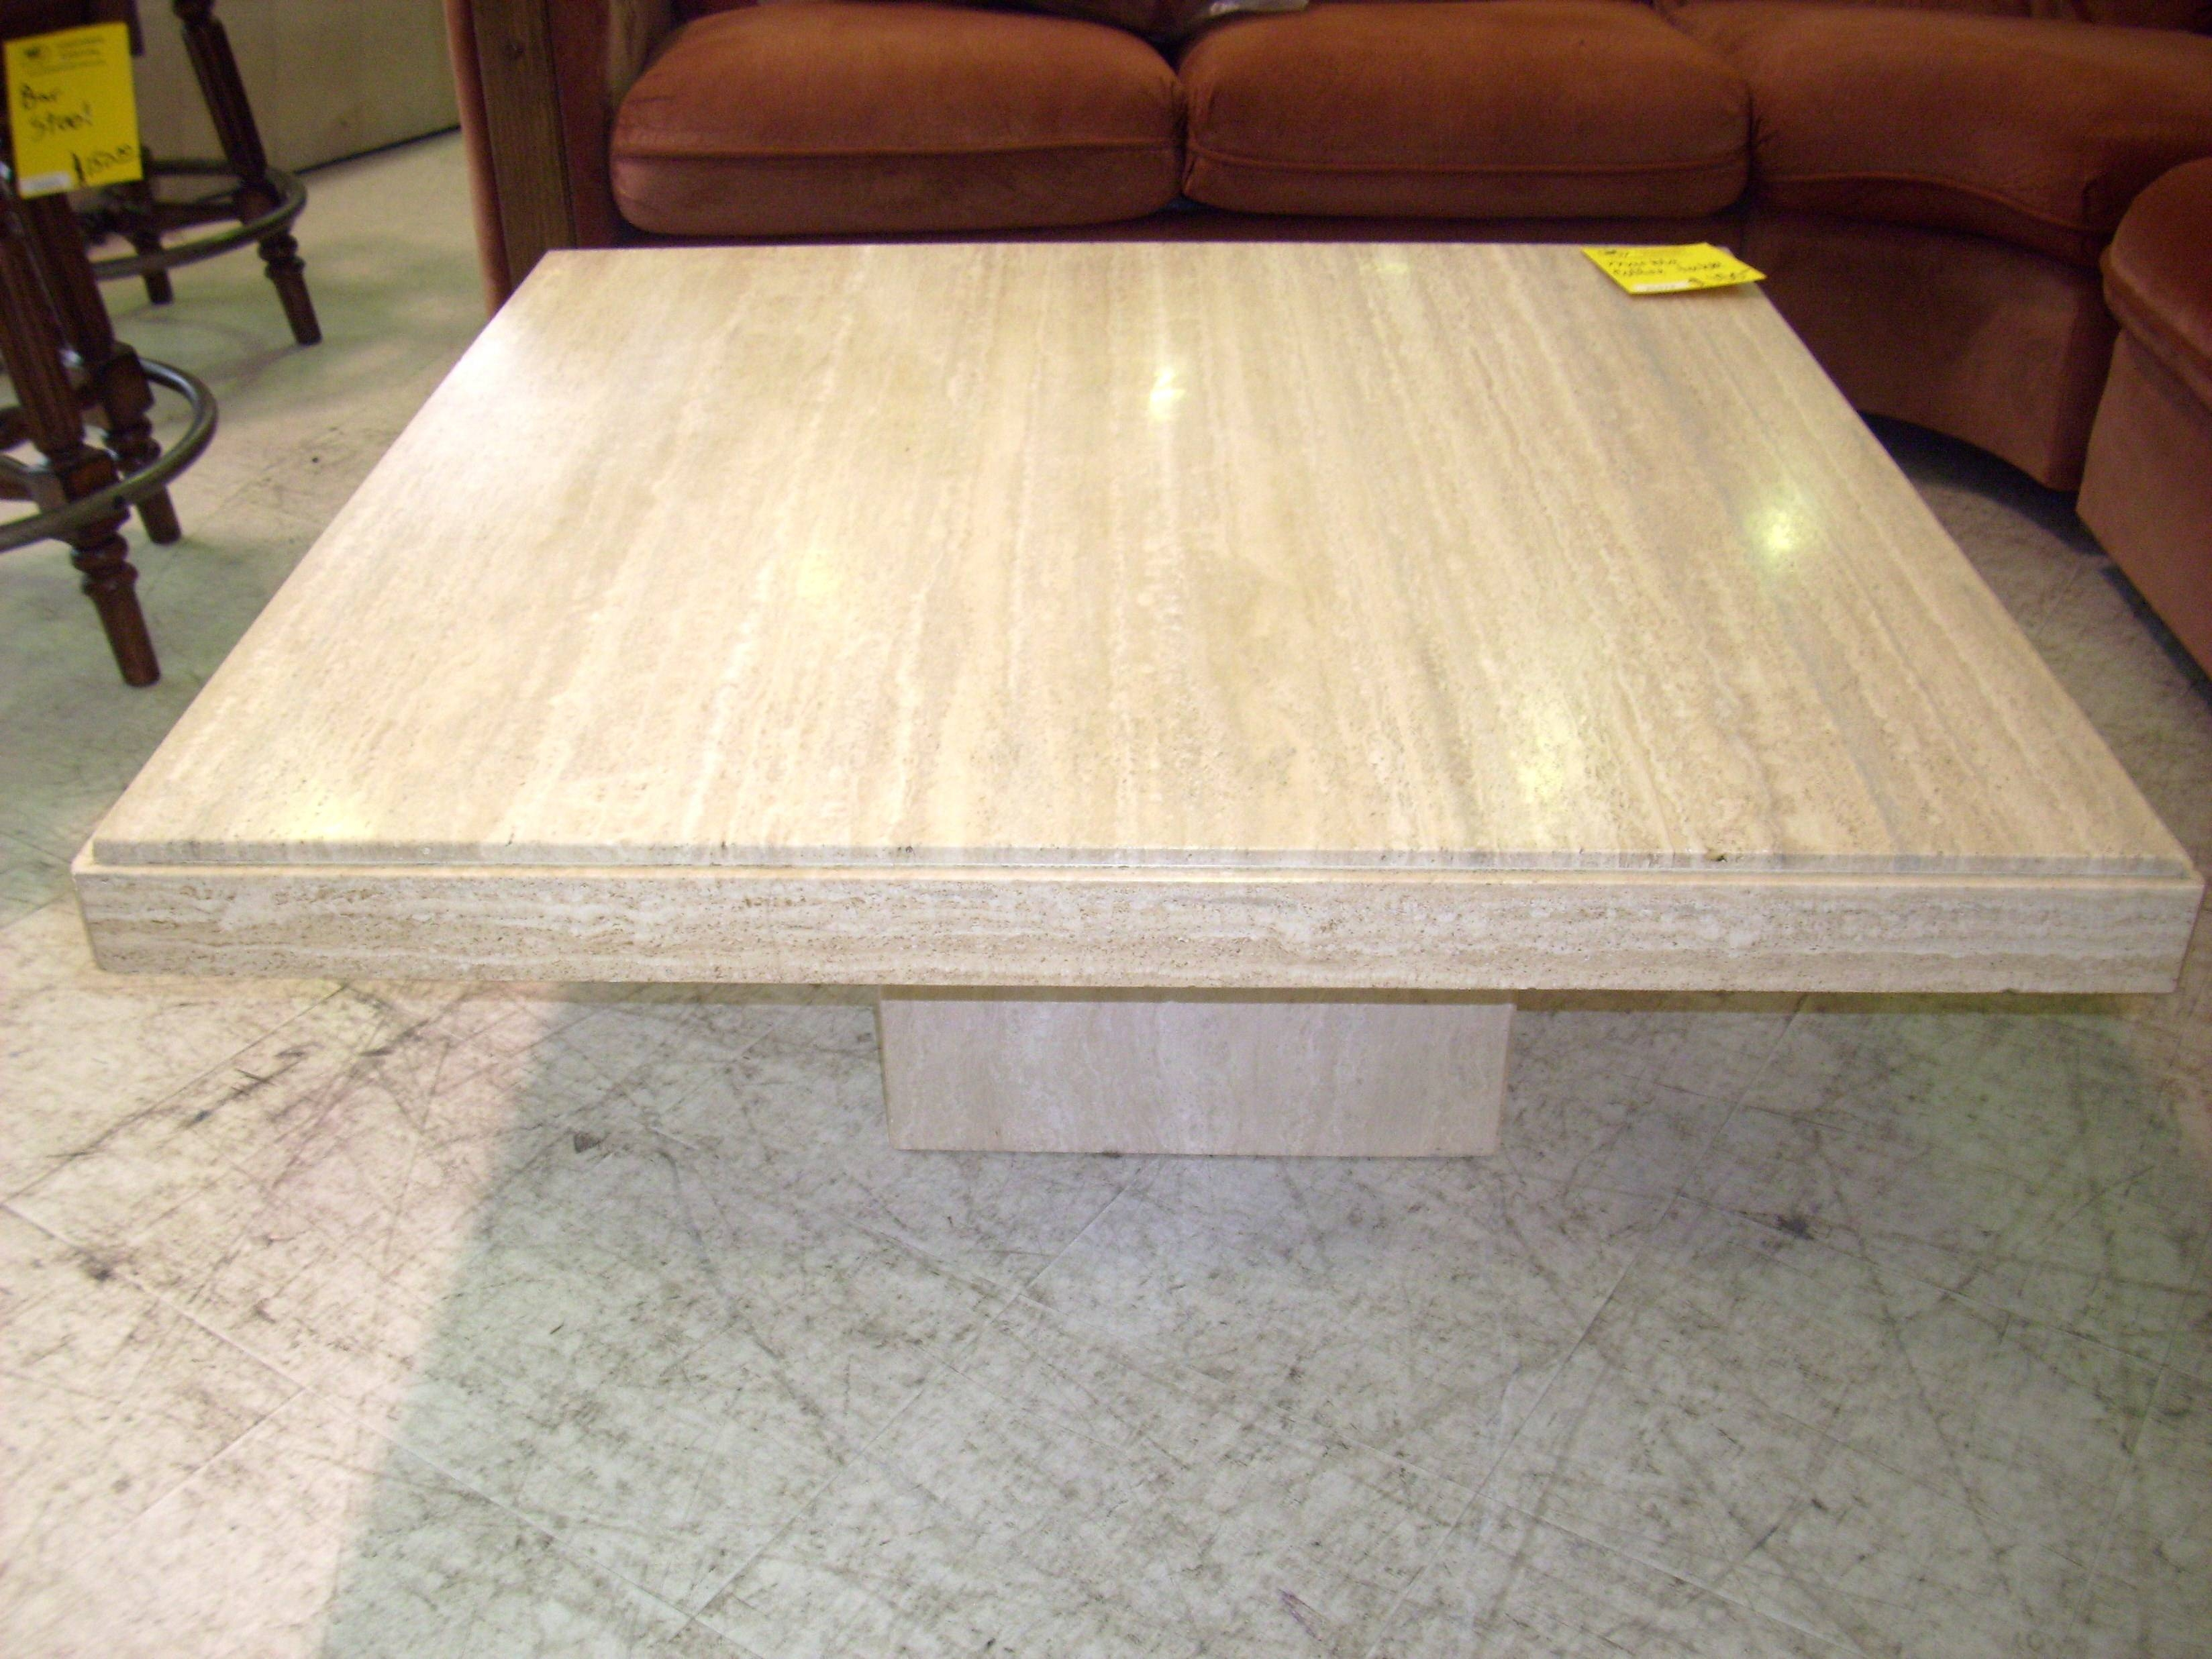 Large Marble Coffee Table | Coffee Tables Decoration inside Square Large Coffee Tables (Image 21 of 30)